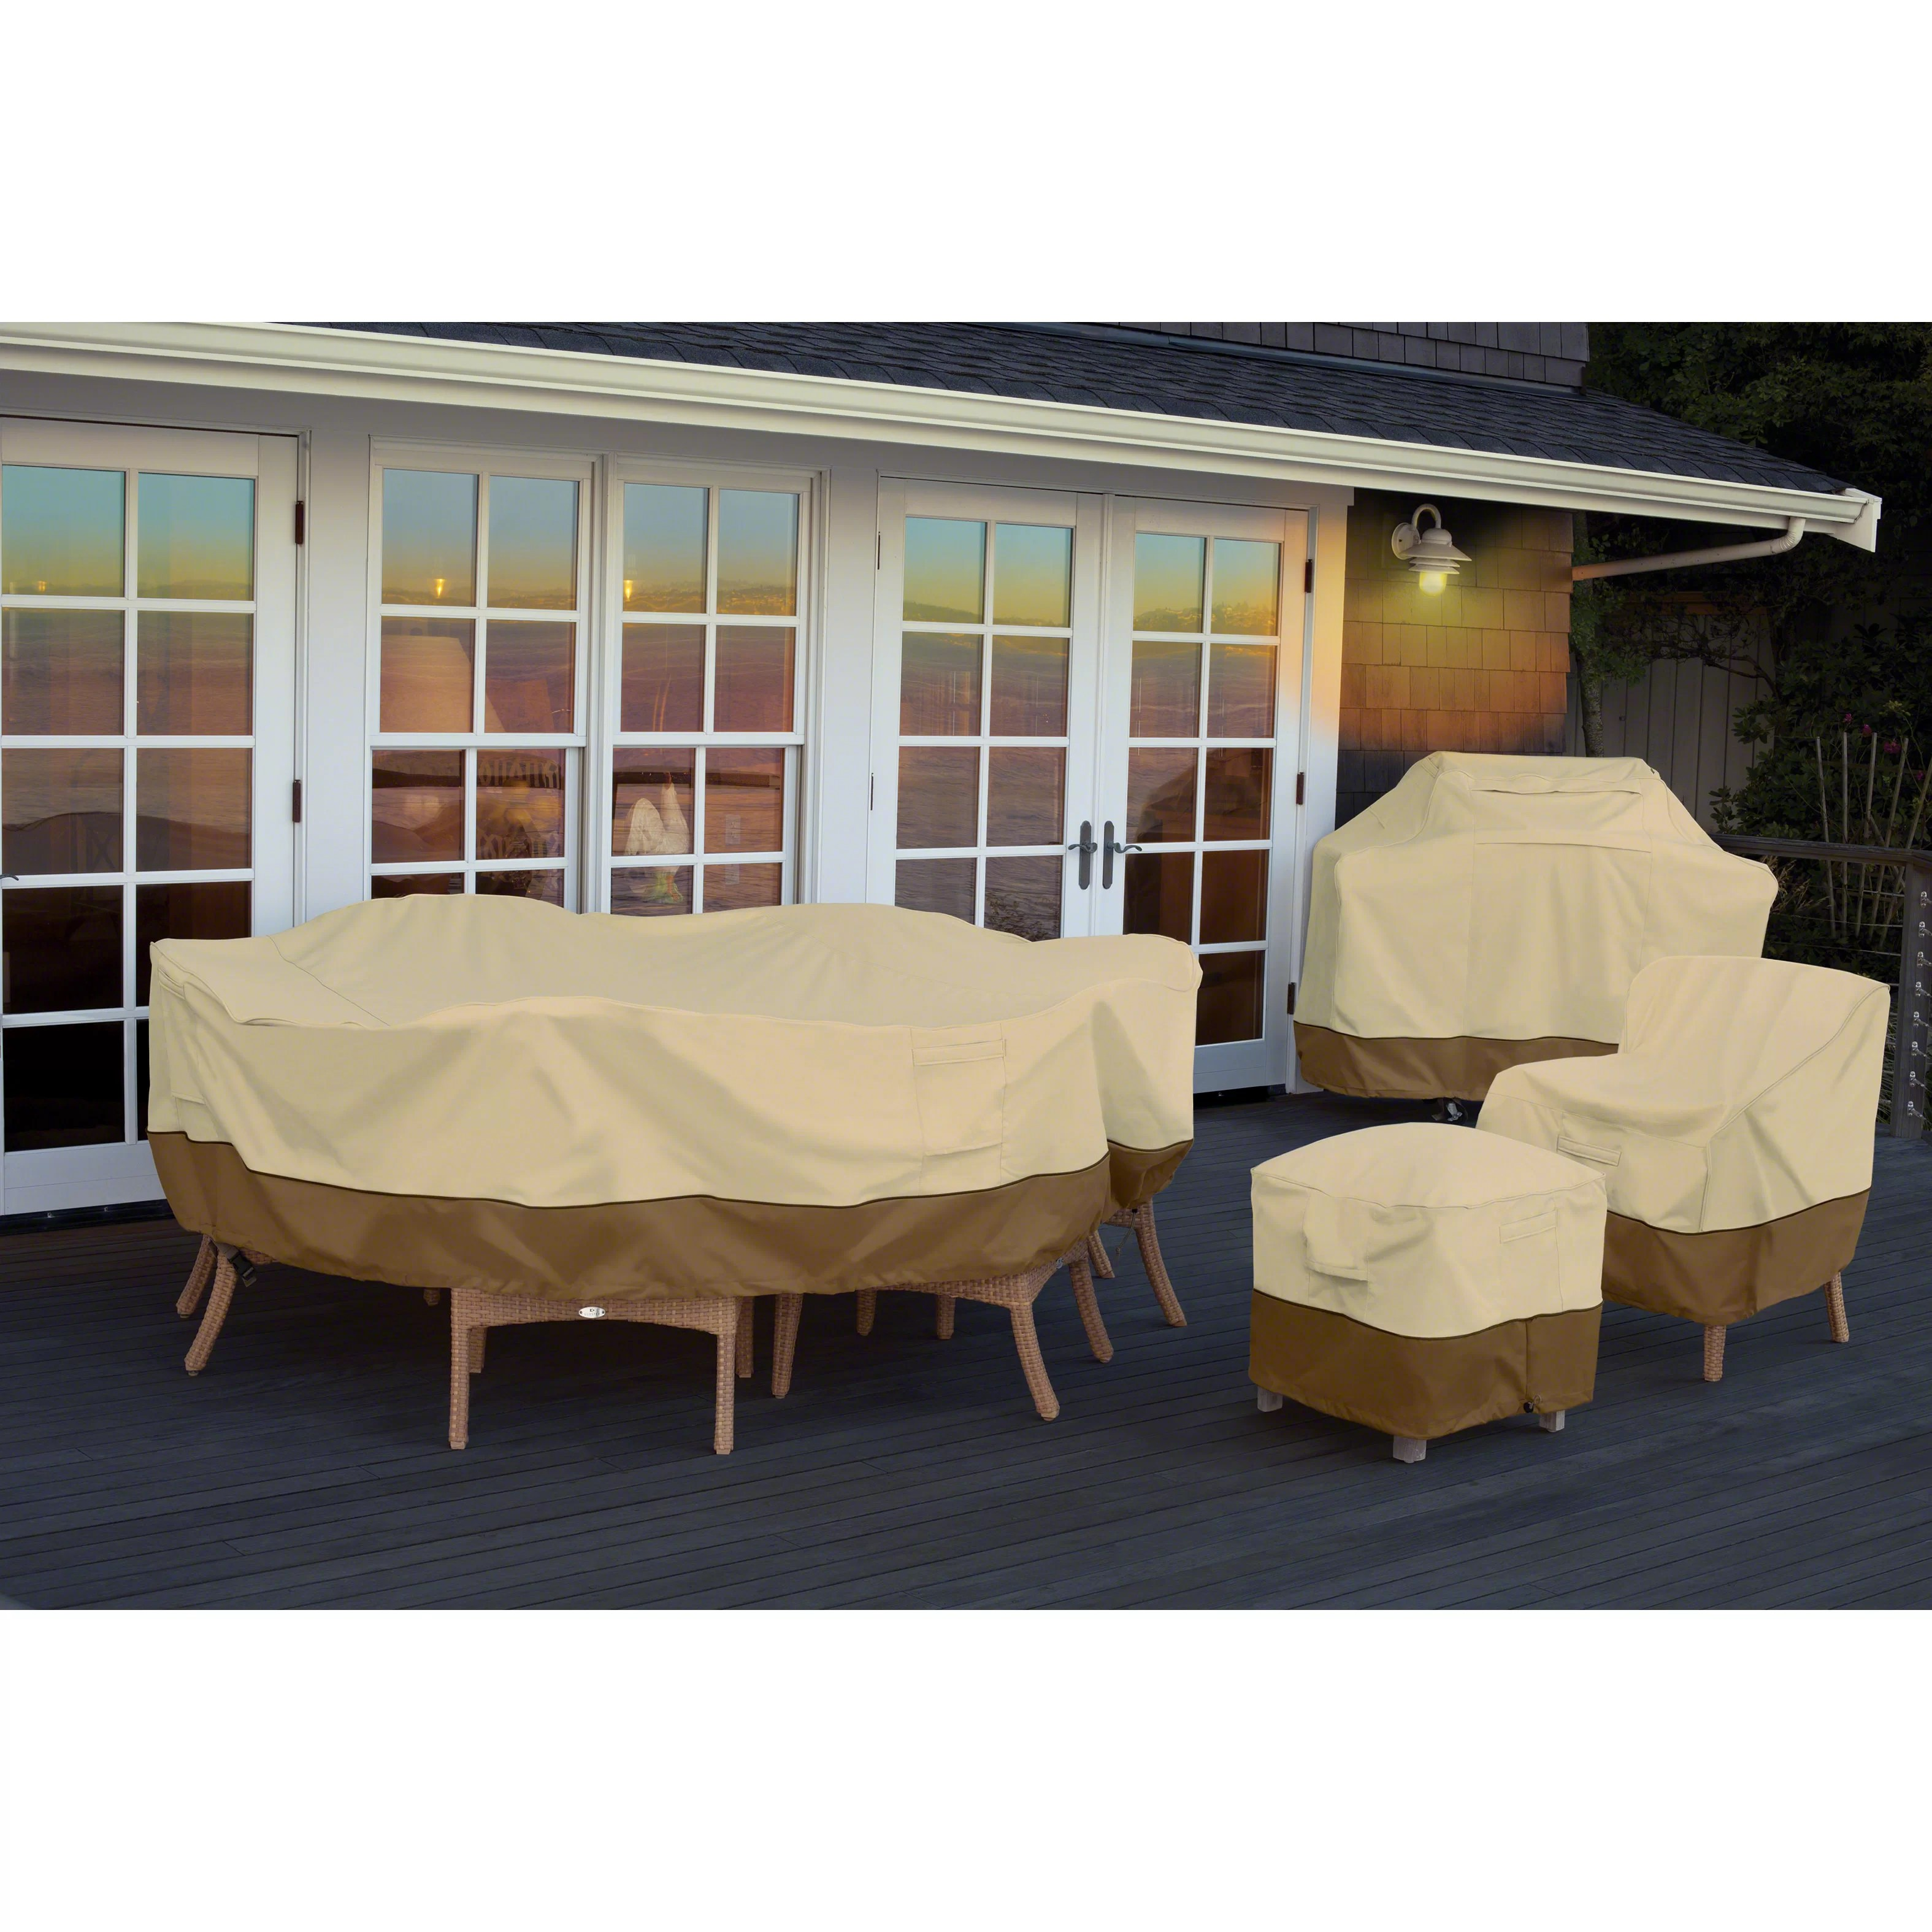 patio table and chair set cover covers galway classic accessories veranda